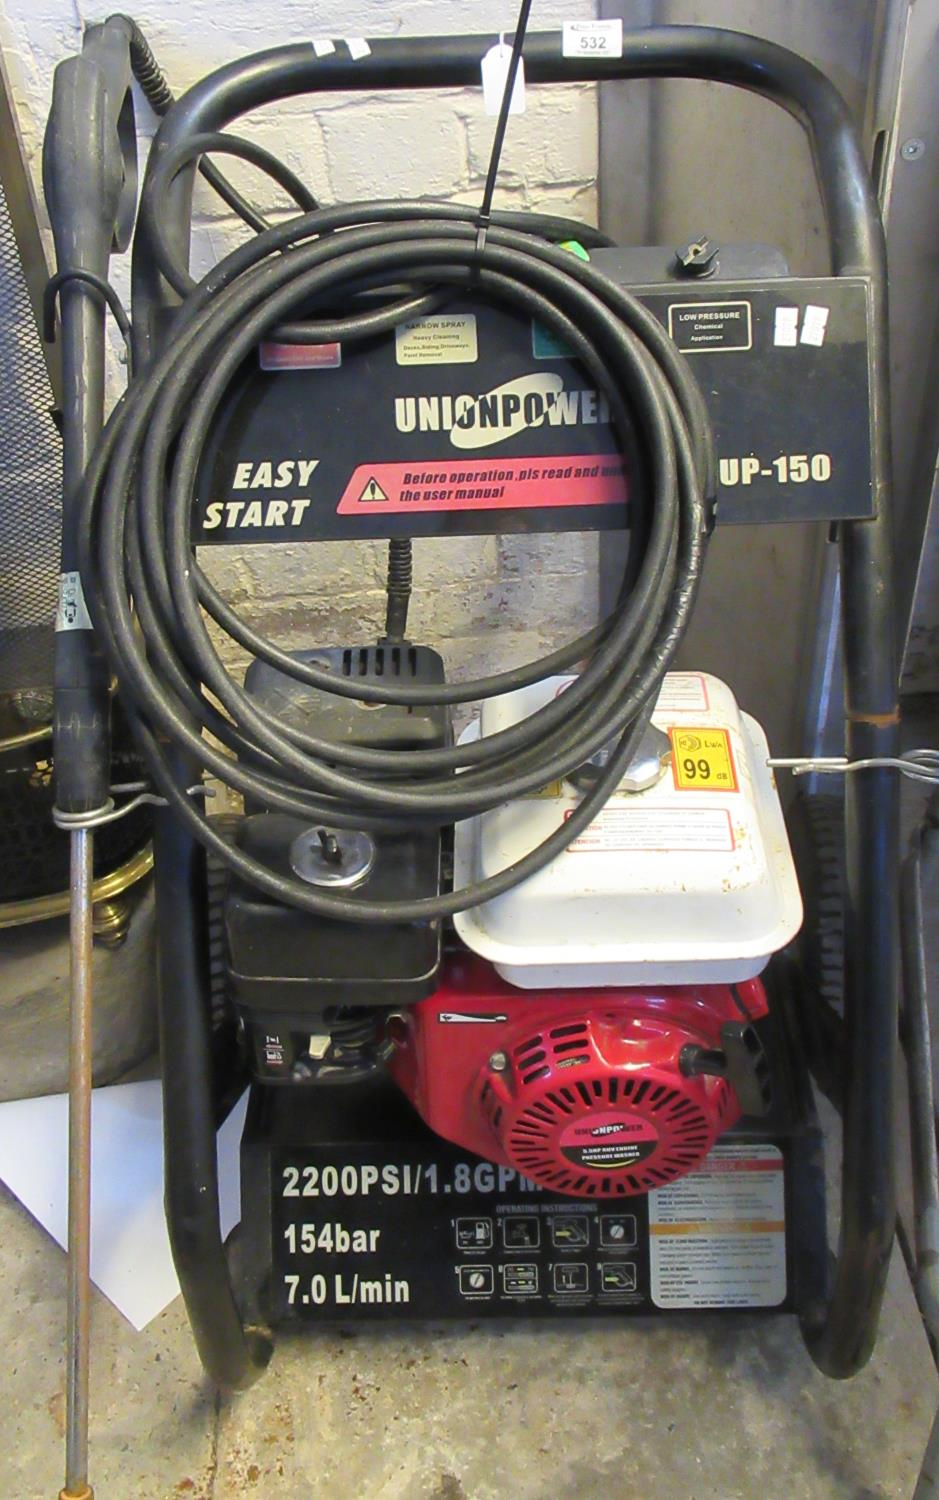 Union Power Easy Start UP-150 petrol or diesel pressure washer. Recently serviced. (B.P. 21% + VAT)